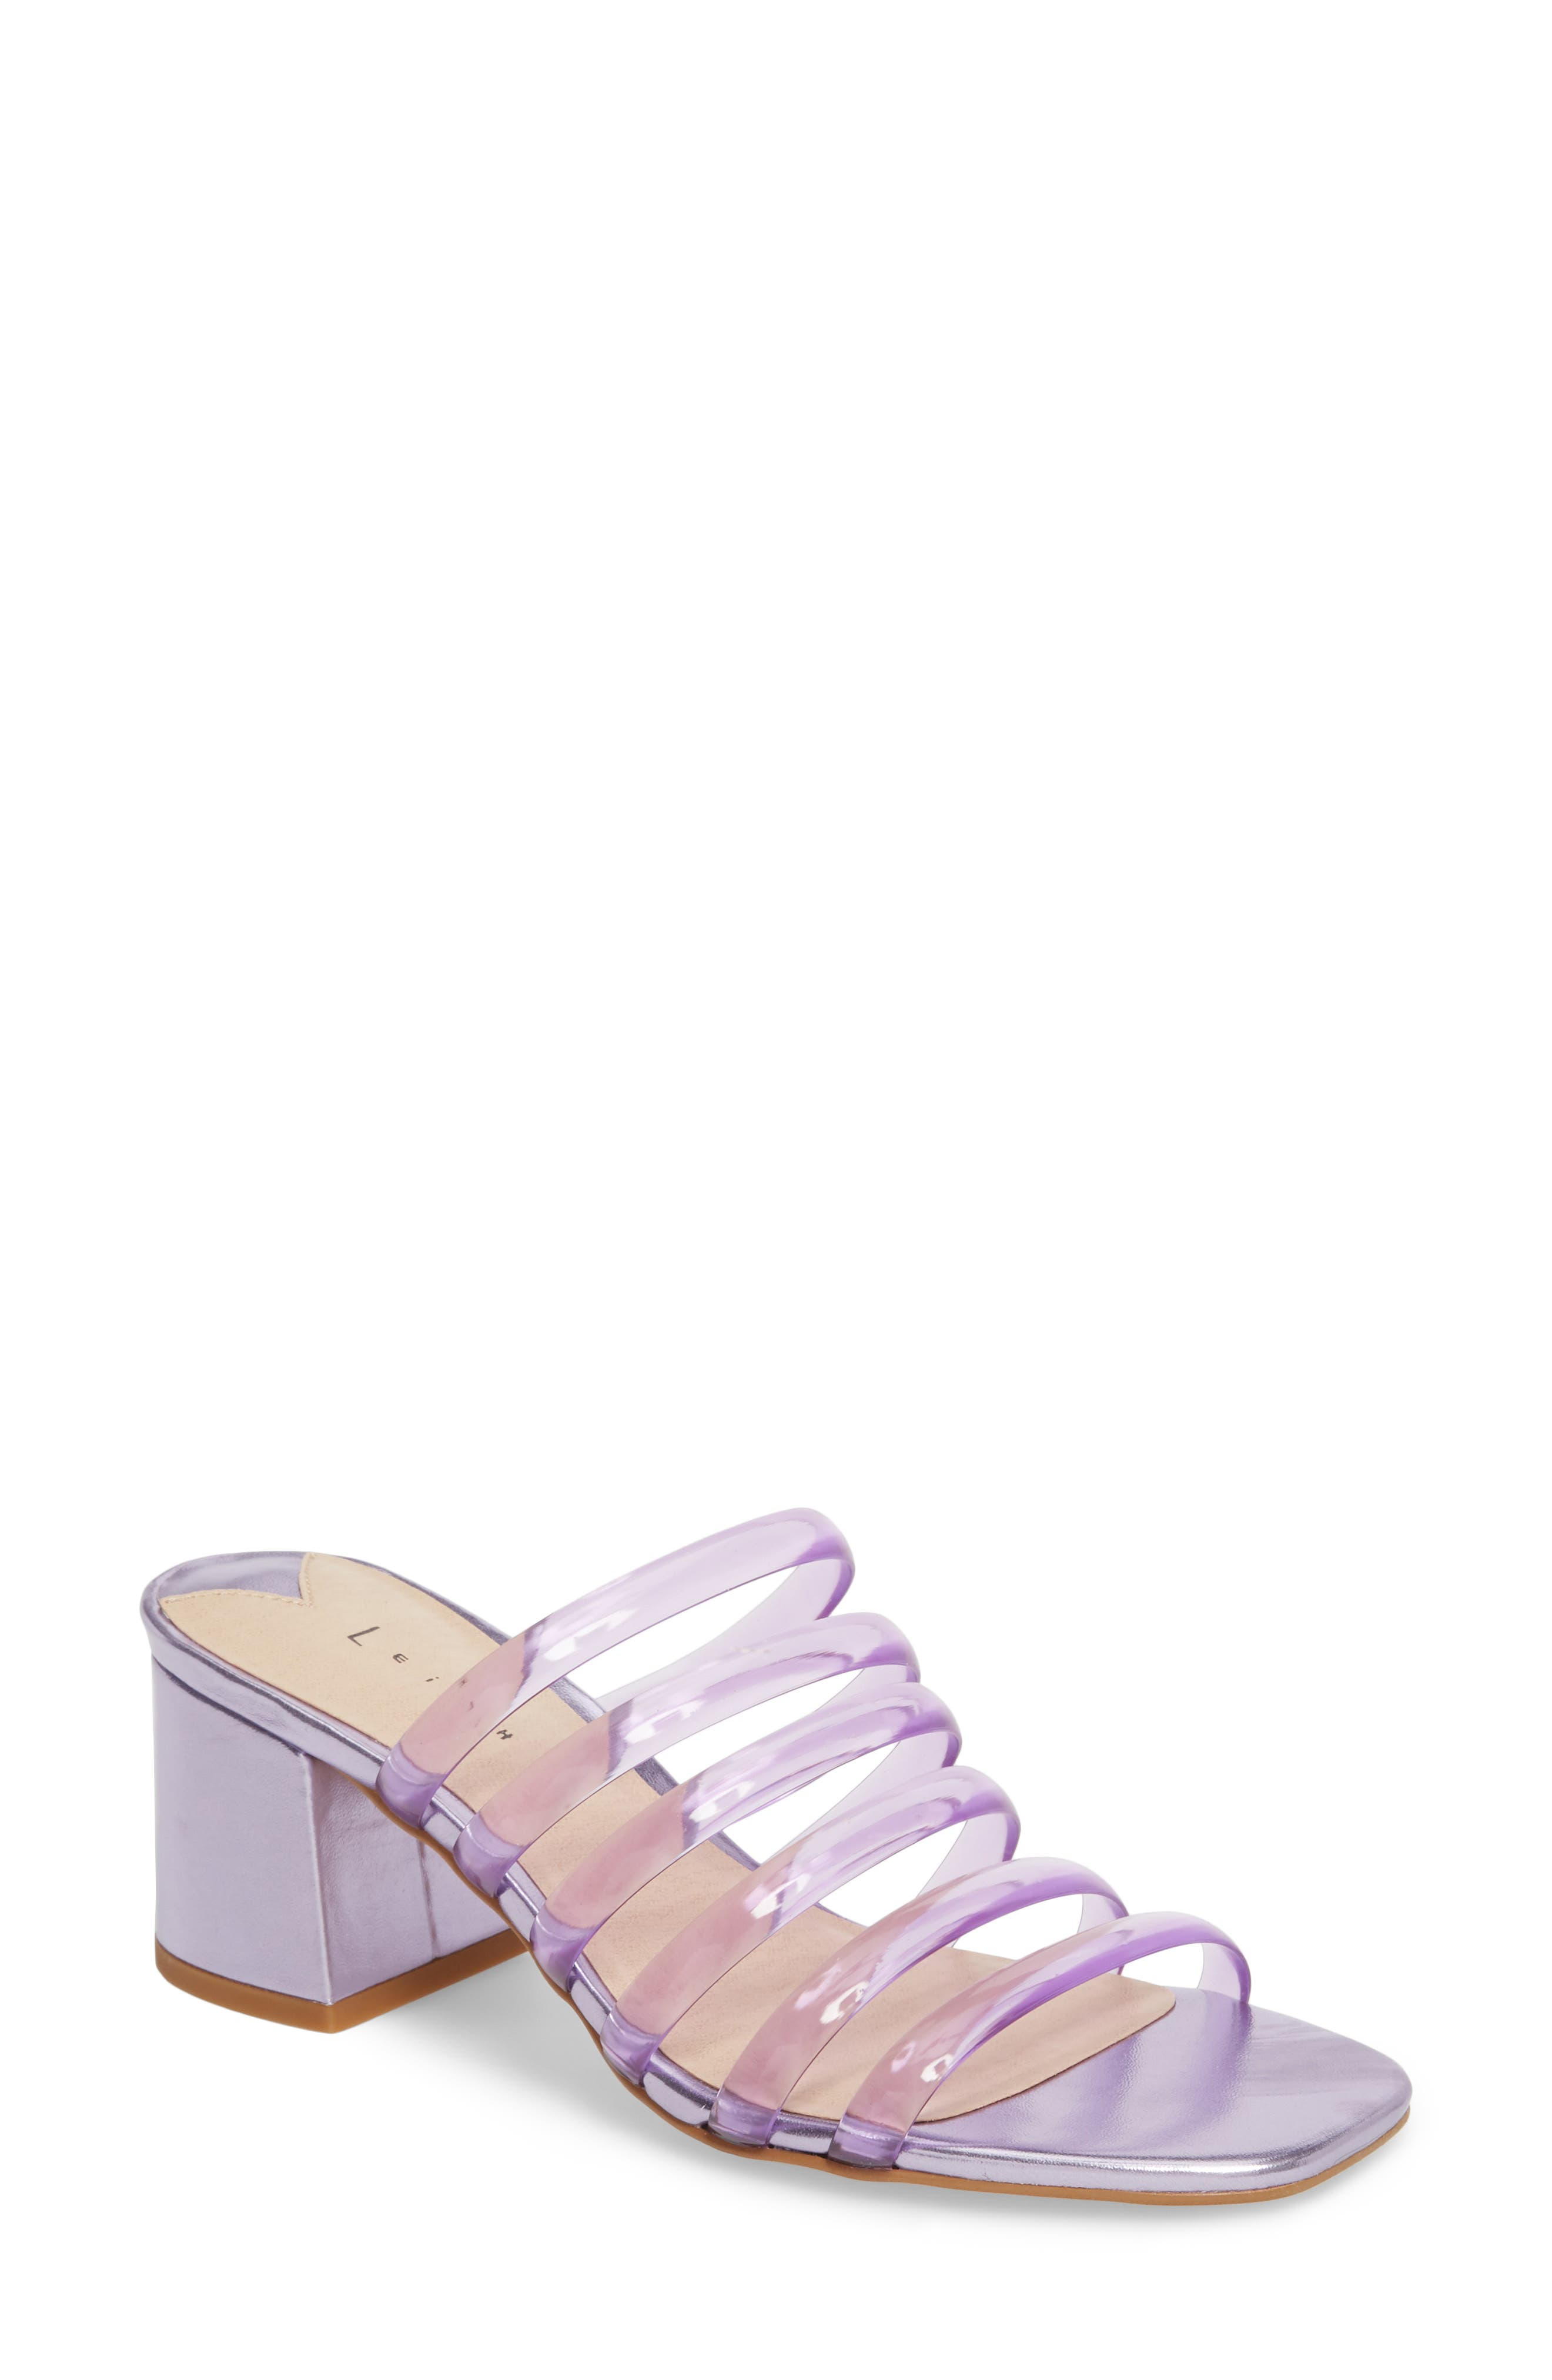 Cloud Jelly Slide Sandal,                         Main,                         color, 510